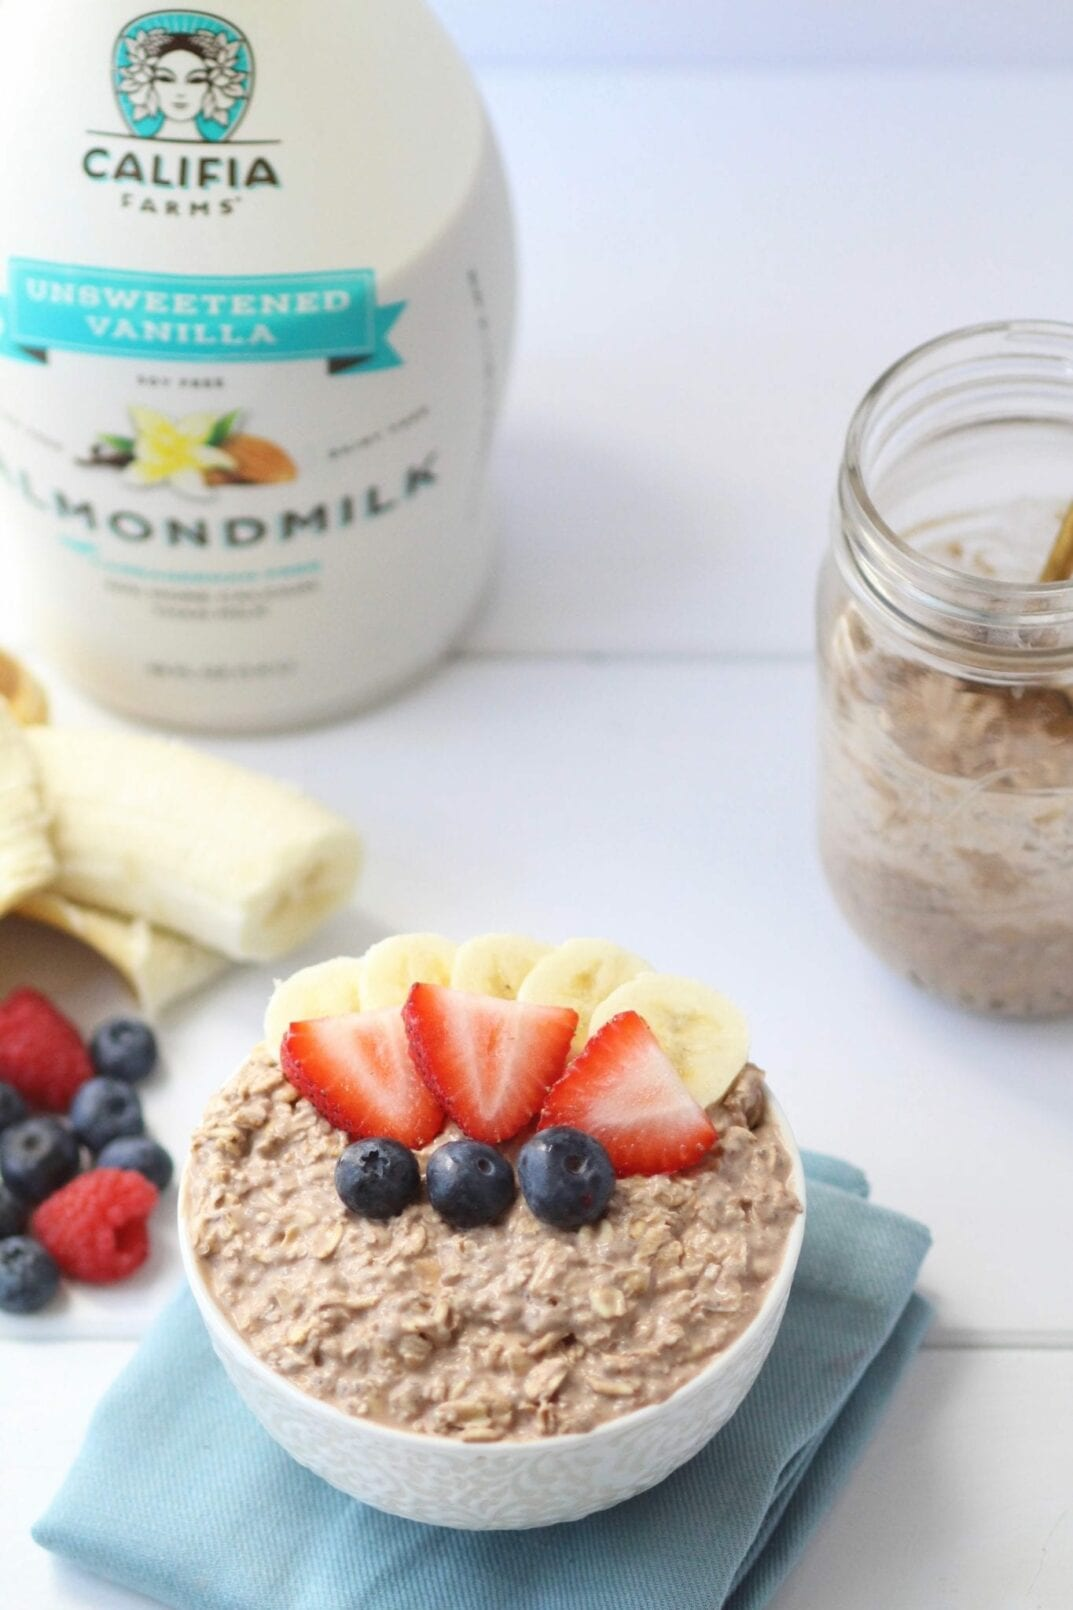 chocolate mousse overnight oats with Califia Farms